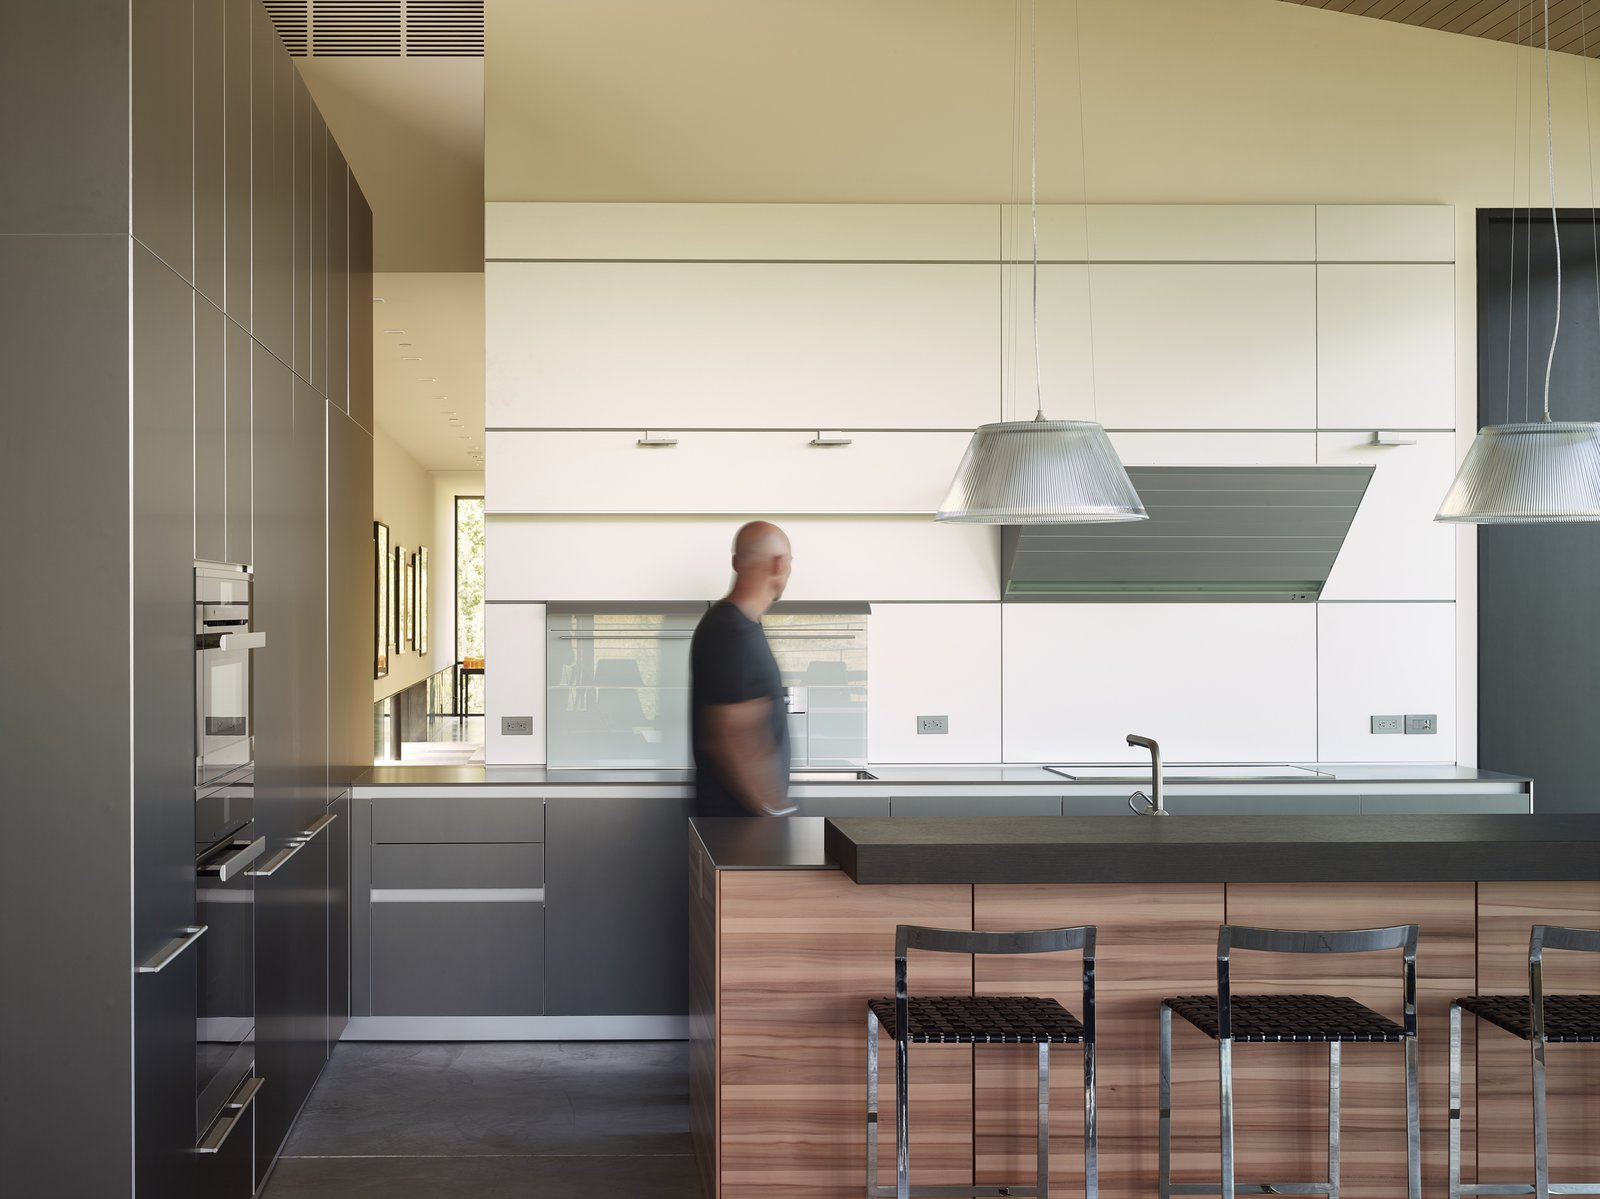 The minimal kitchen design is apportioned with tri-colored cabinets and a clever opening through that overlooks the gallery. Tagged: Kitchen, Wood Cabinet, and White Cabinet.  Wyoming Residence by Abramson Teiger Architects